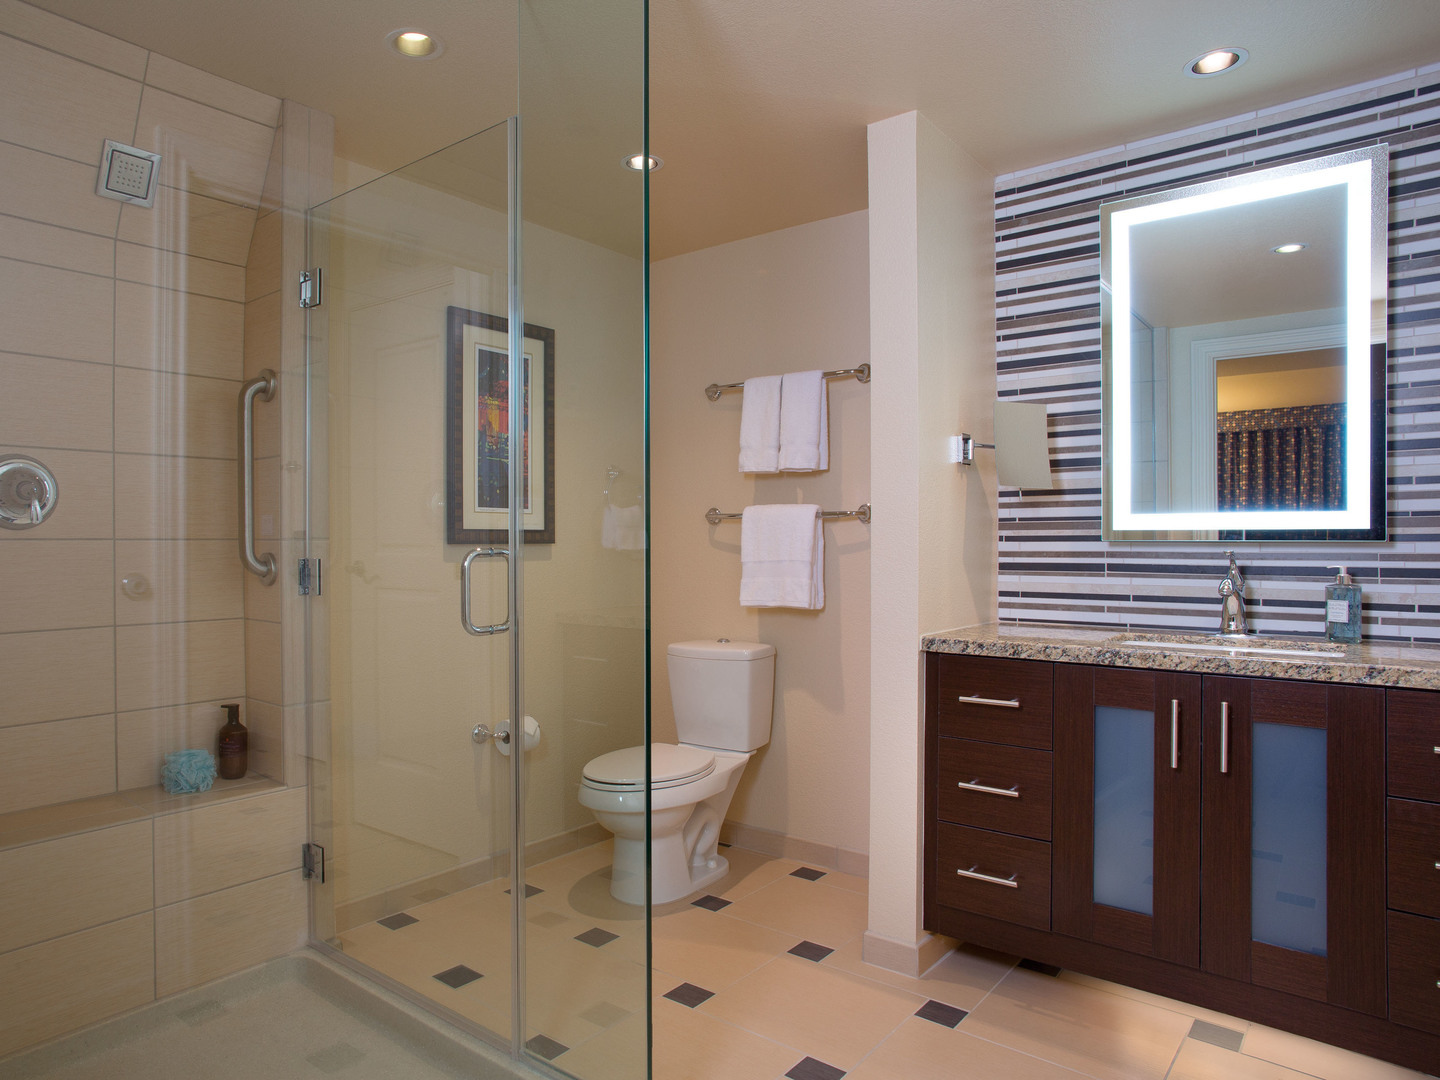 Marriott's Grand Chateau<span class='trademark'>®</span> Master Bathroom (Tower 3). Marriott's Grand Chateau<span class='trademark'>®</span> is located in Las Vegas, Nevada United States.